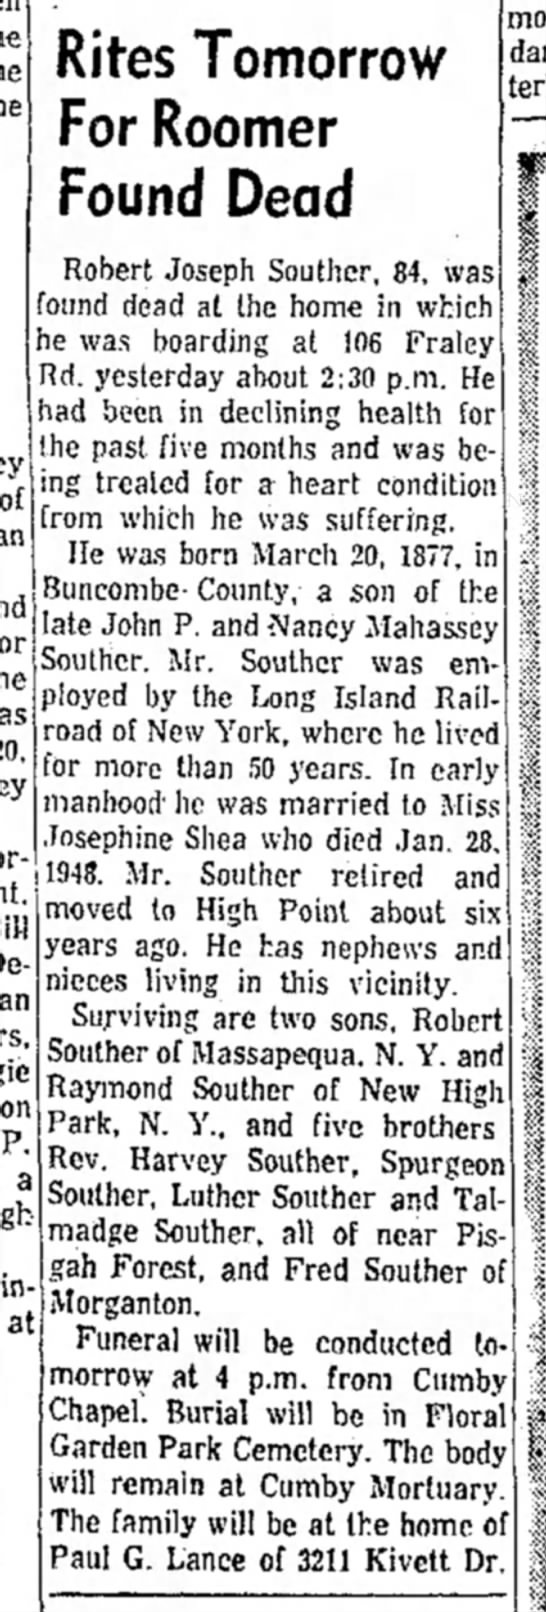 Robert Joseph Souther